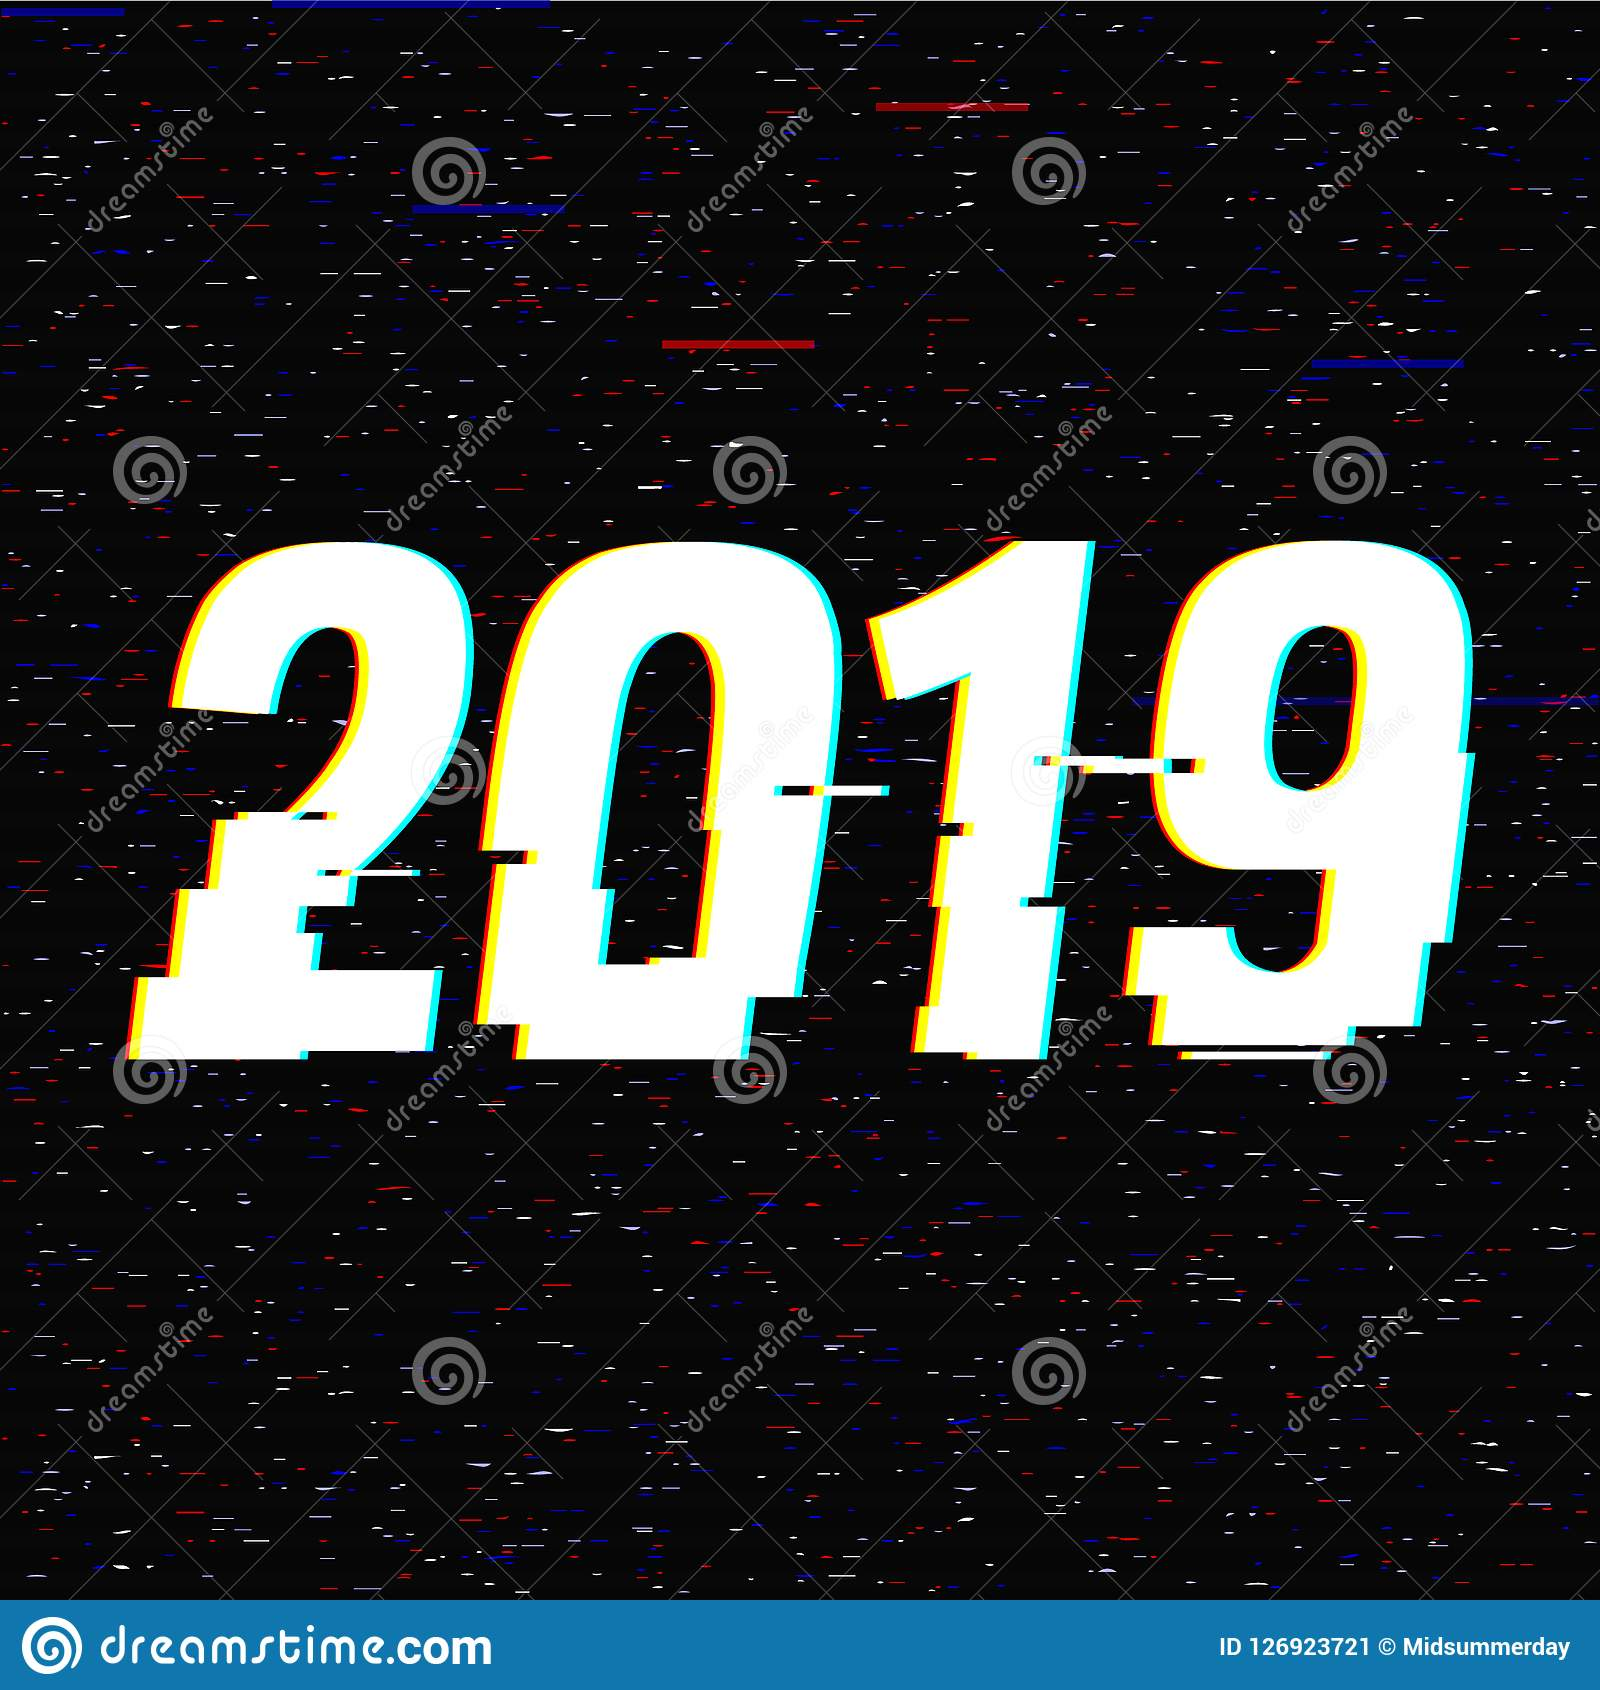 2019 glitch text. New Year concept. Anaglyph 3D effect. Technological retro background. Vector illustration. Creative